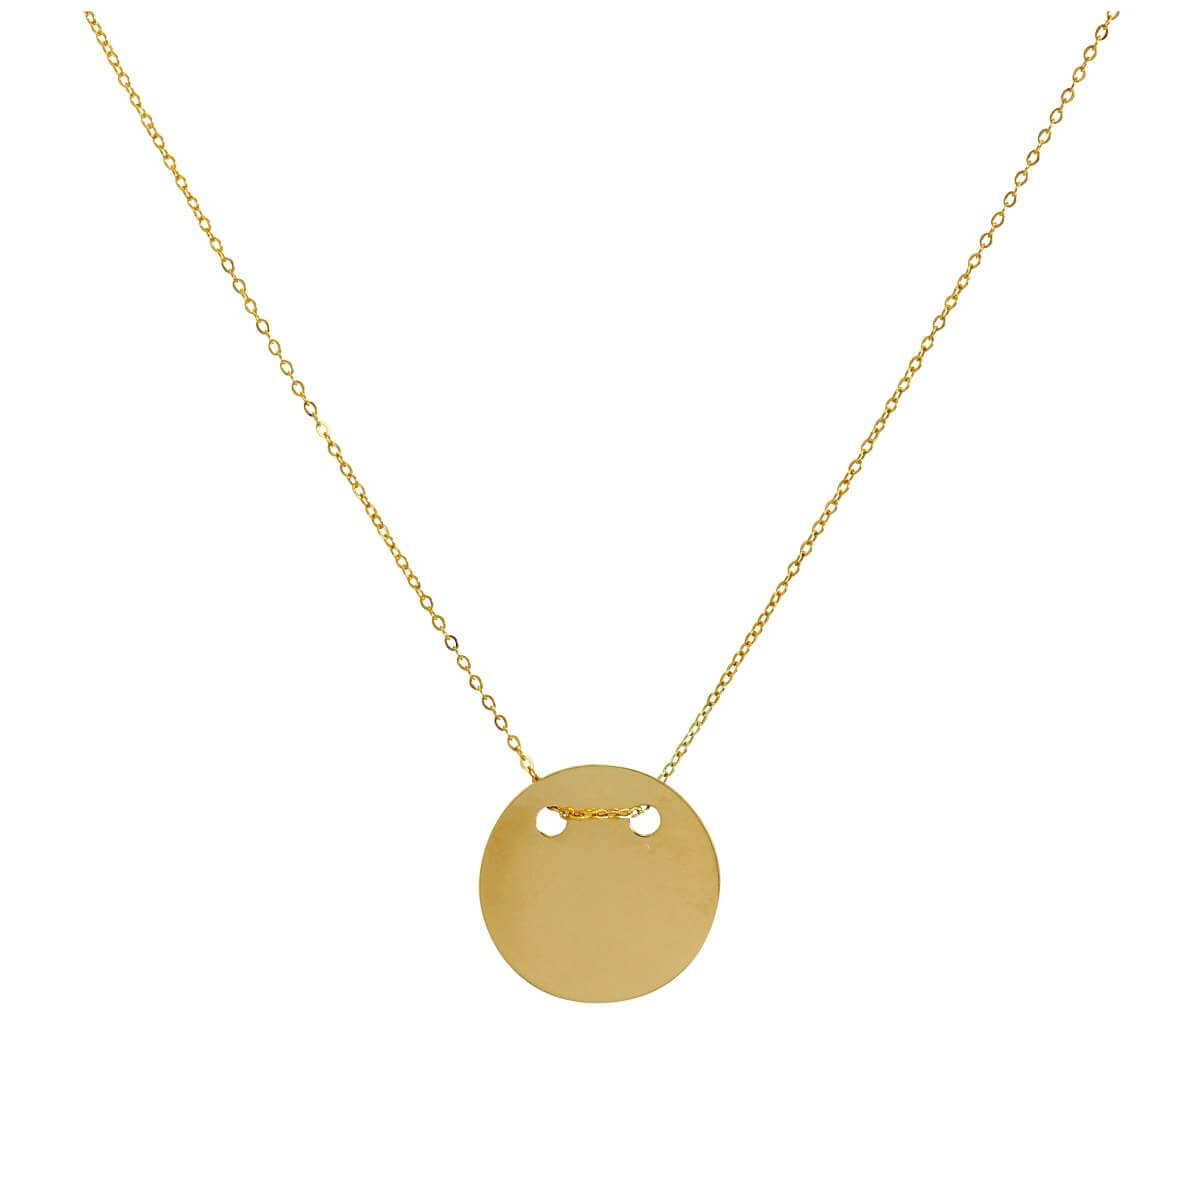 9ct Gold Engravable Circle Necklace 16 Inches